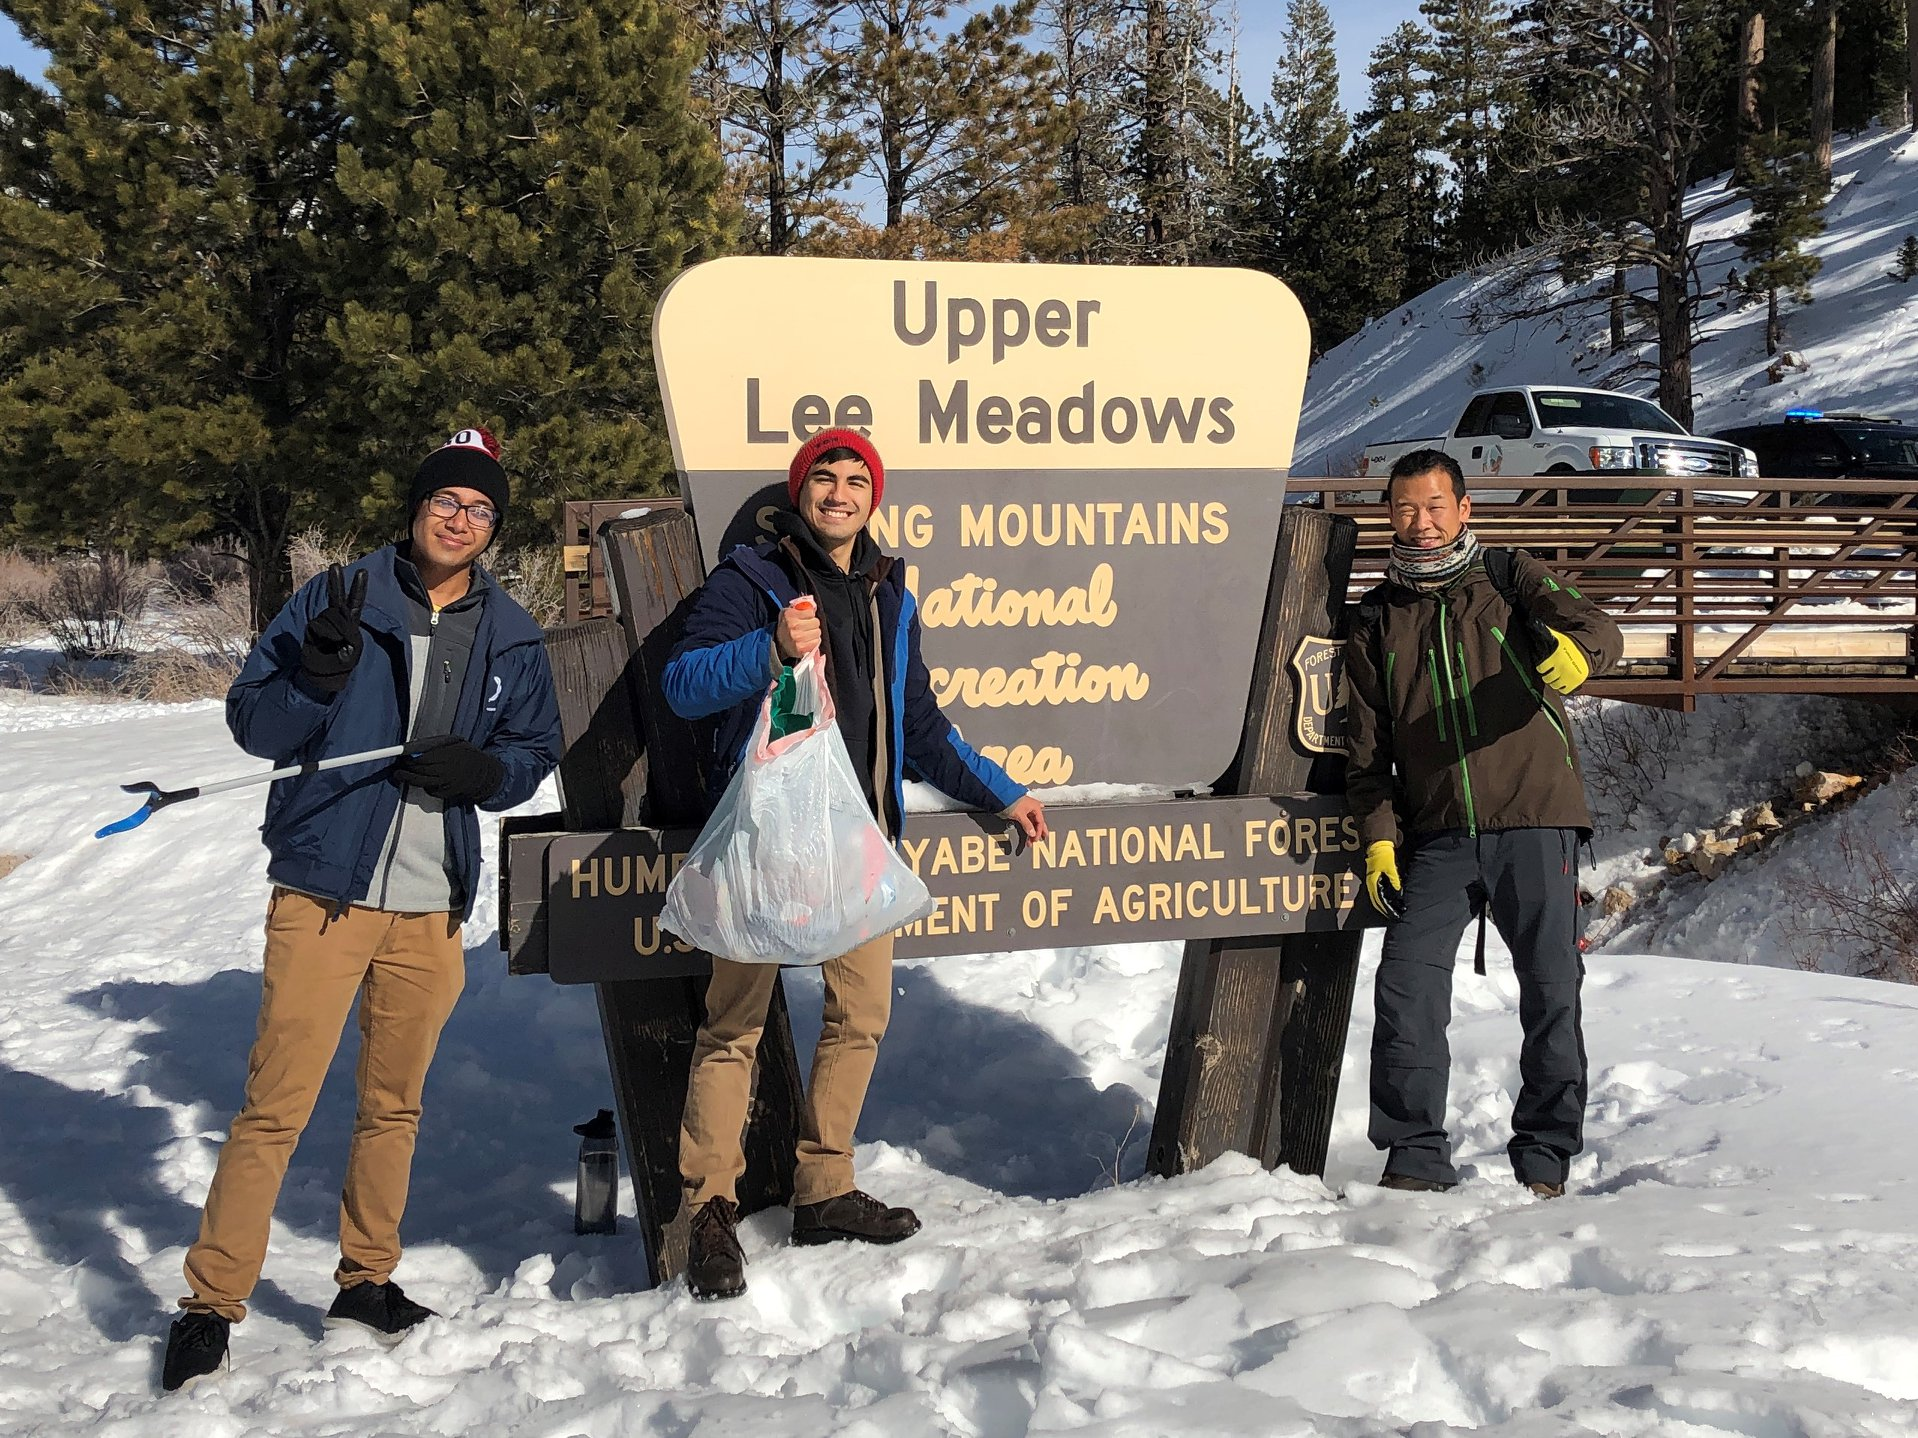 Snow doesn't deter these determined volunteers. Taken at Mount Charleston National Park.